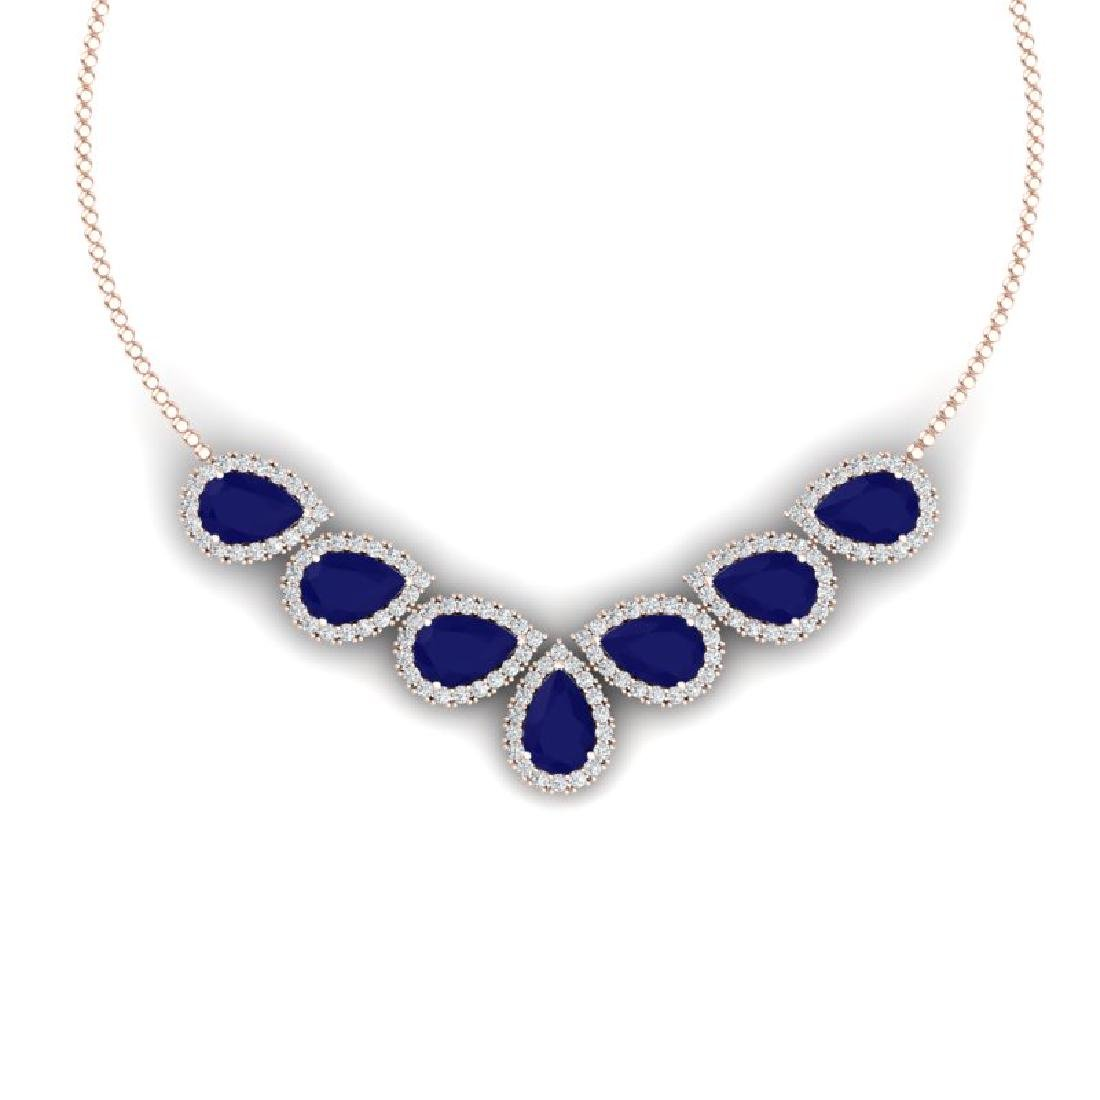 34.72 CTW Royalty Sapphire & VS Diamond Necklace 18K